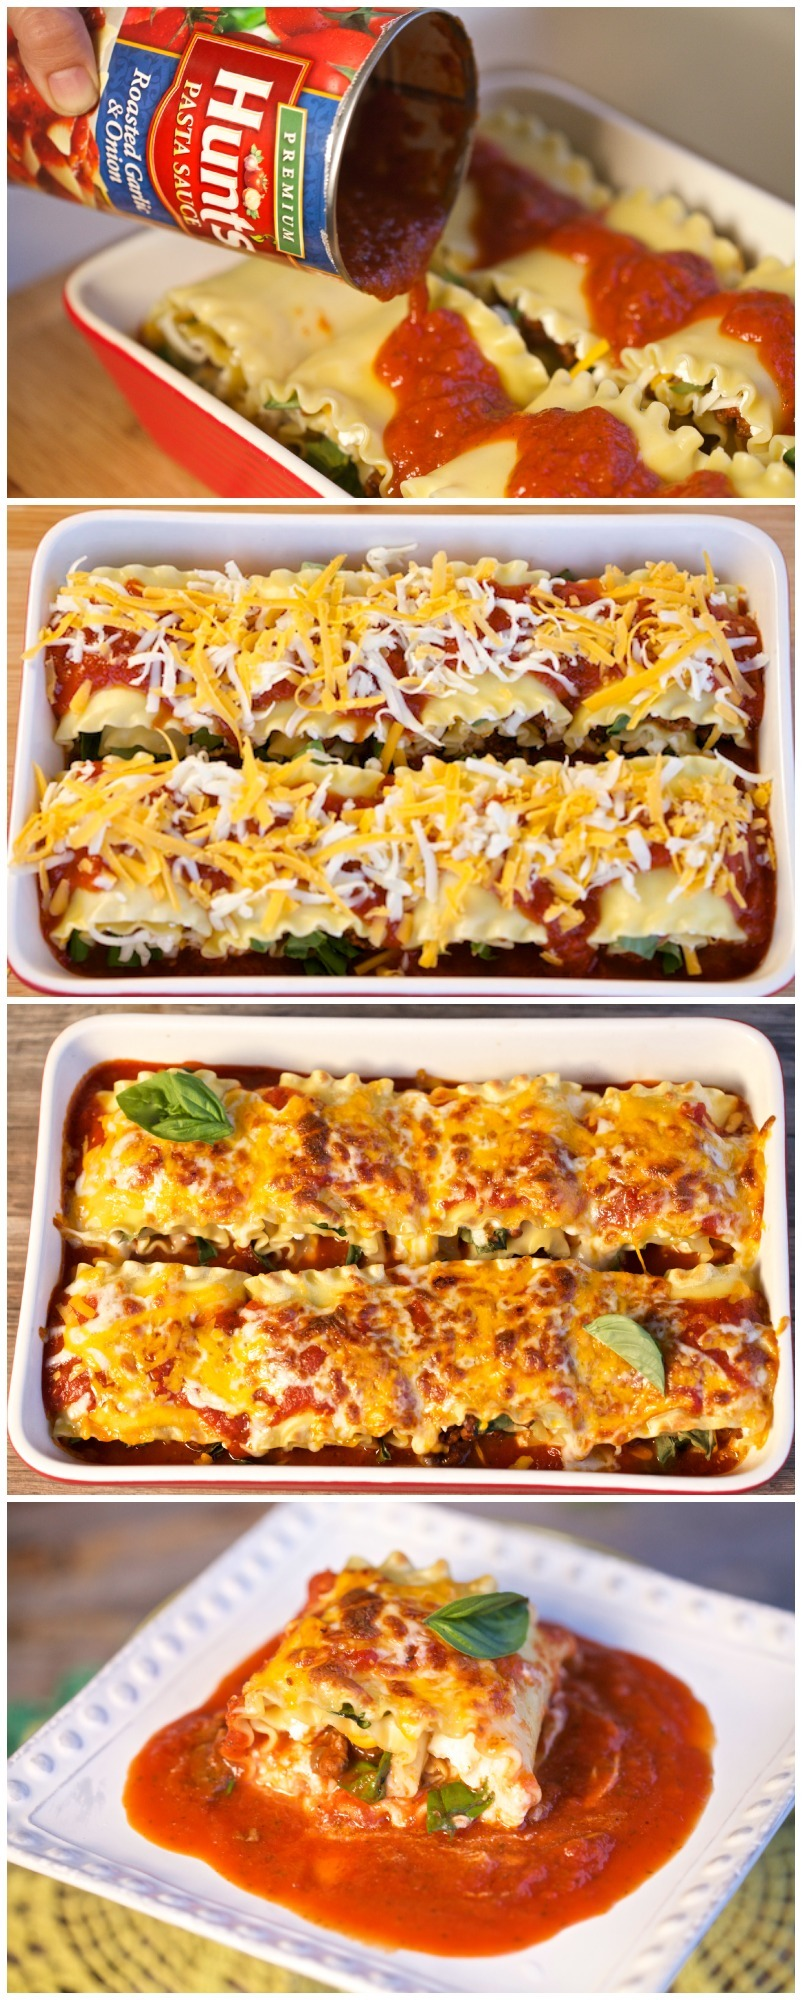 Place all manwich lasagna rolls in baking dish. Make sure all lasagna rolls are snug, and pour Hunt's pasta sauce over the top. Top with cheese and bake at 375 Fahrenheit for 30 minutes.